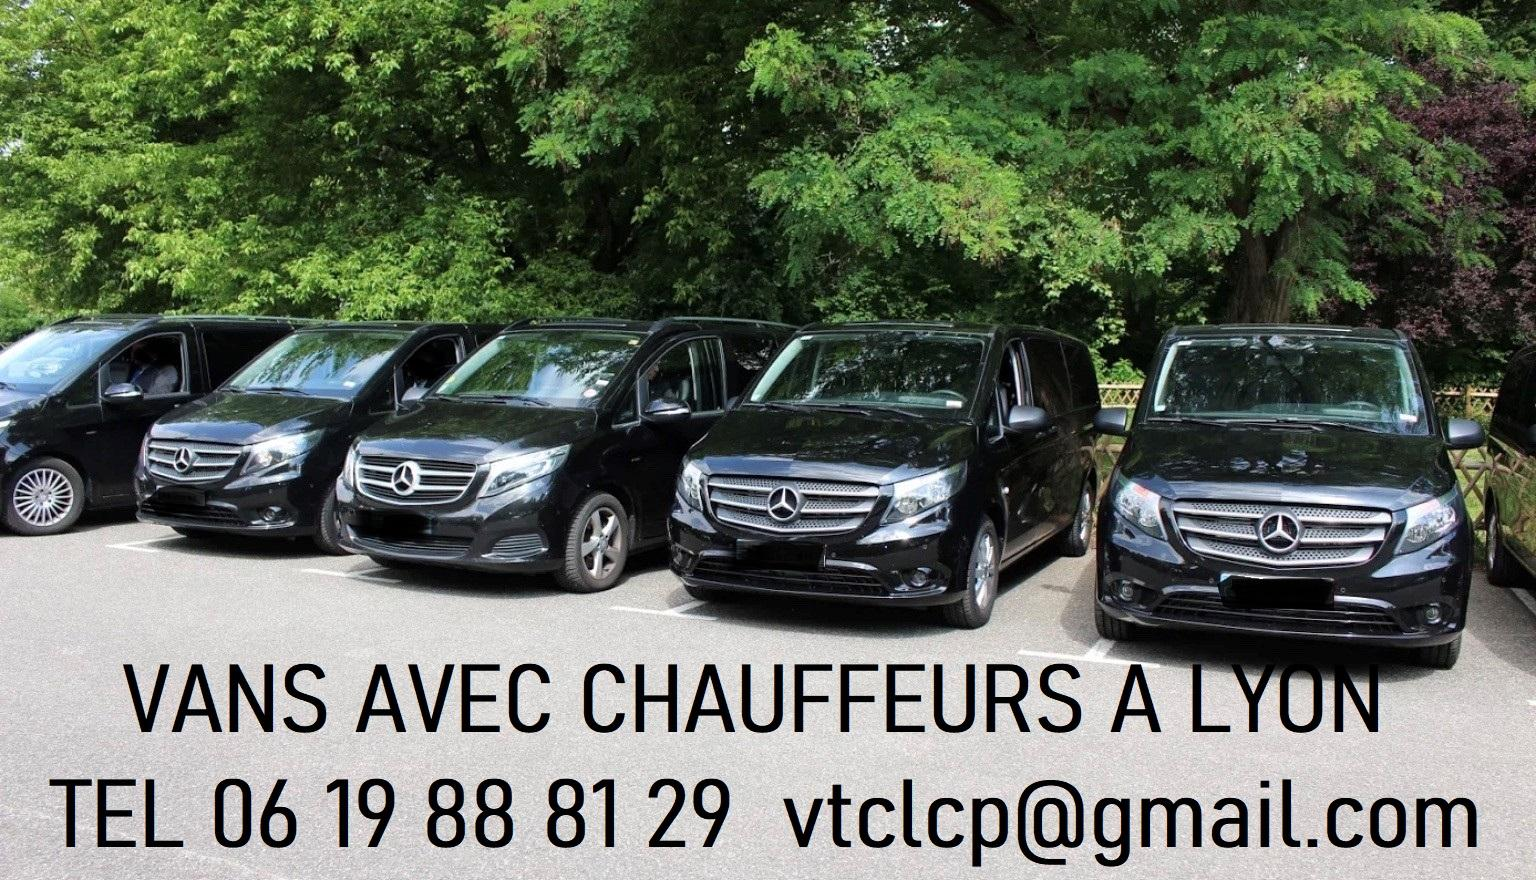 VTC Lyon transport d'équipage aviation d'affaires